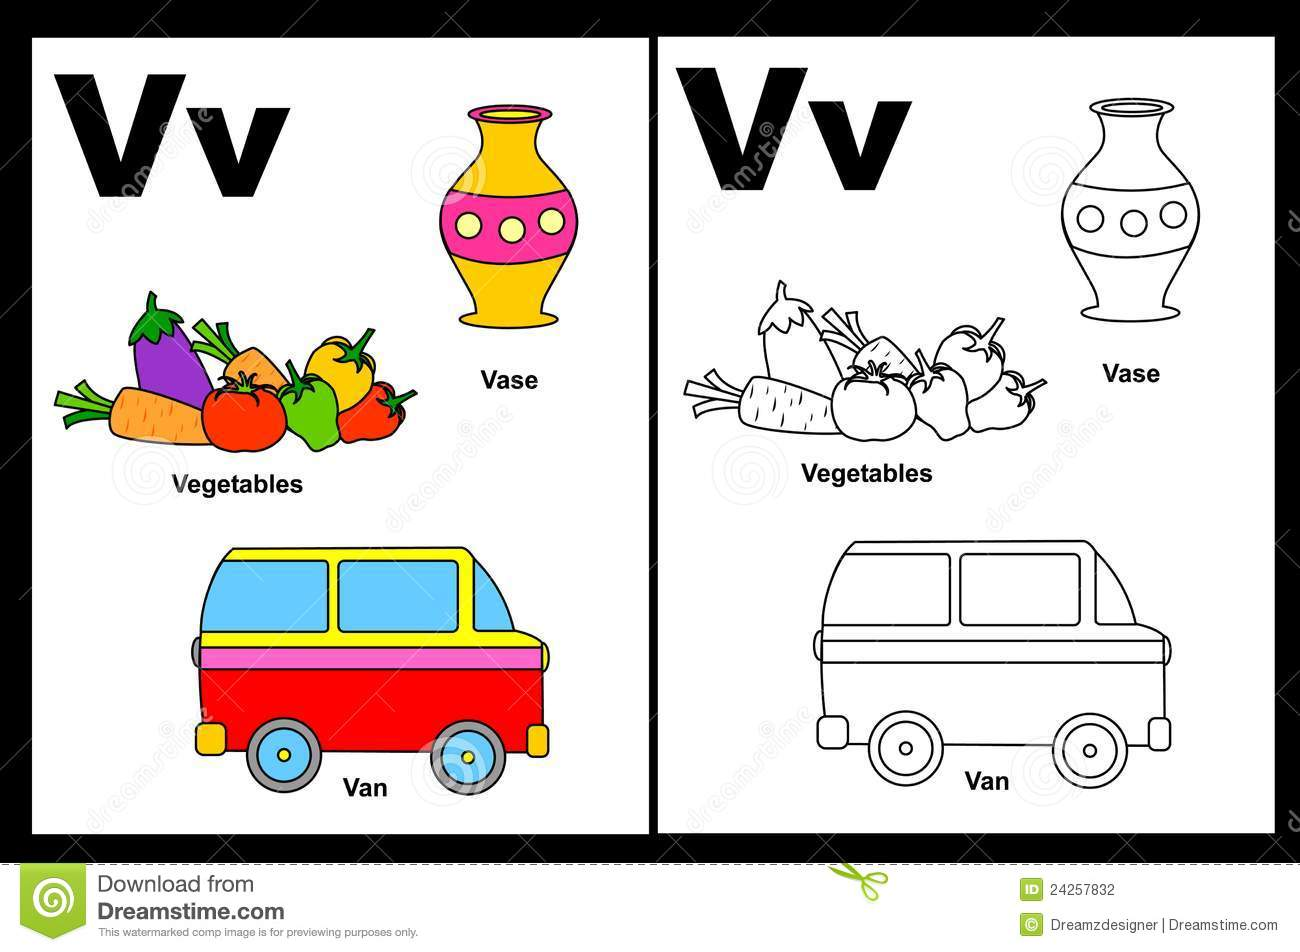 Letter V Worksheet Photography Image 24257832 – Letter V Worksheets for Kindergarten